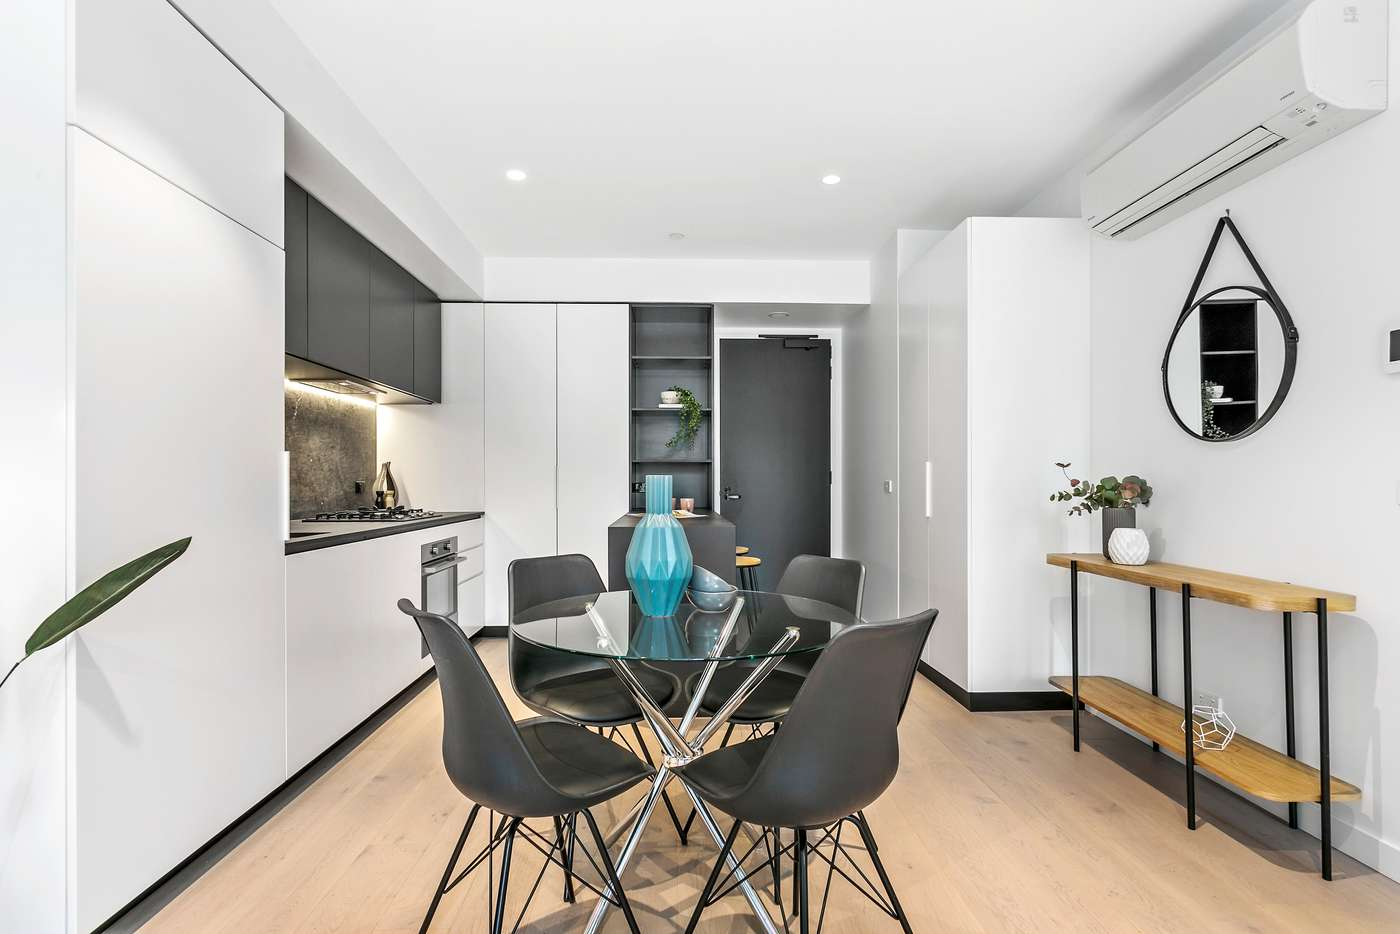 Main view of Homely apartment listing, 199 Peel Street, North Melbourne VIC 3051